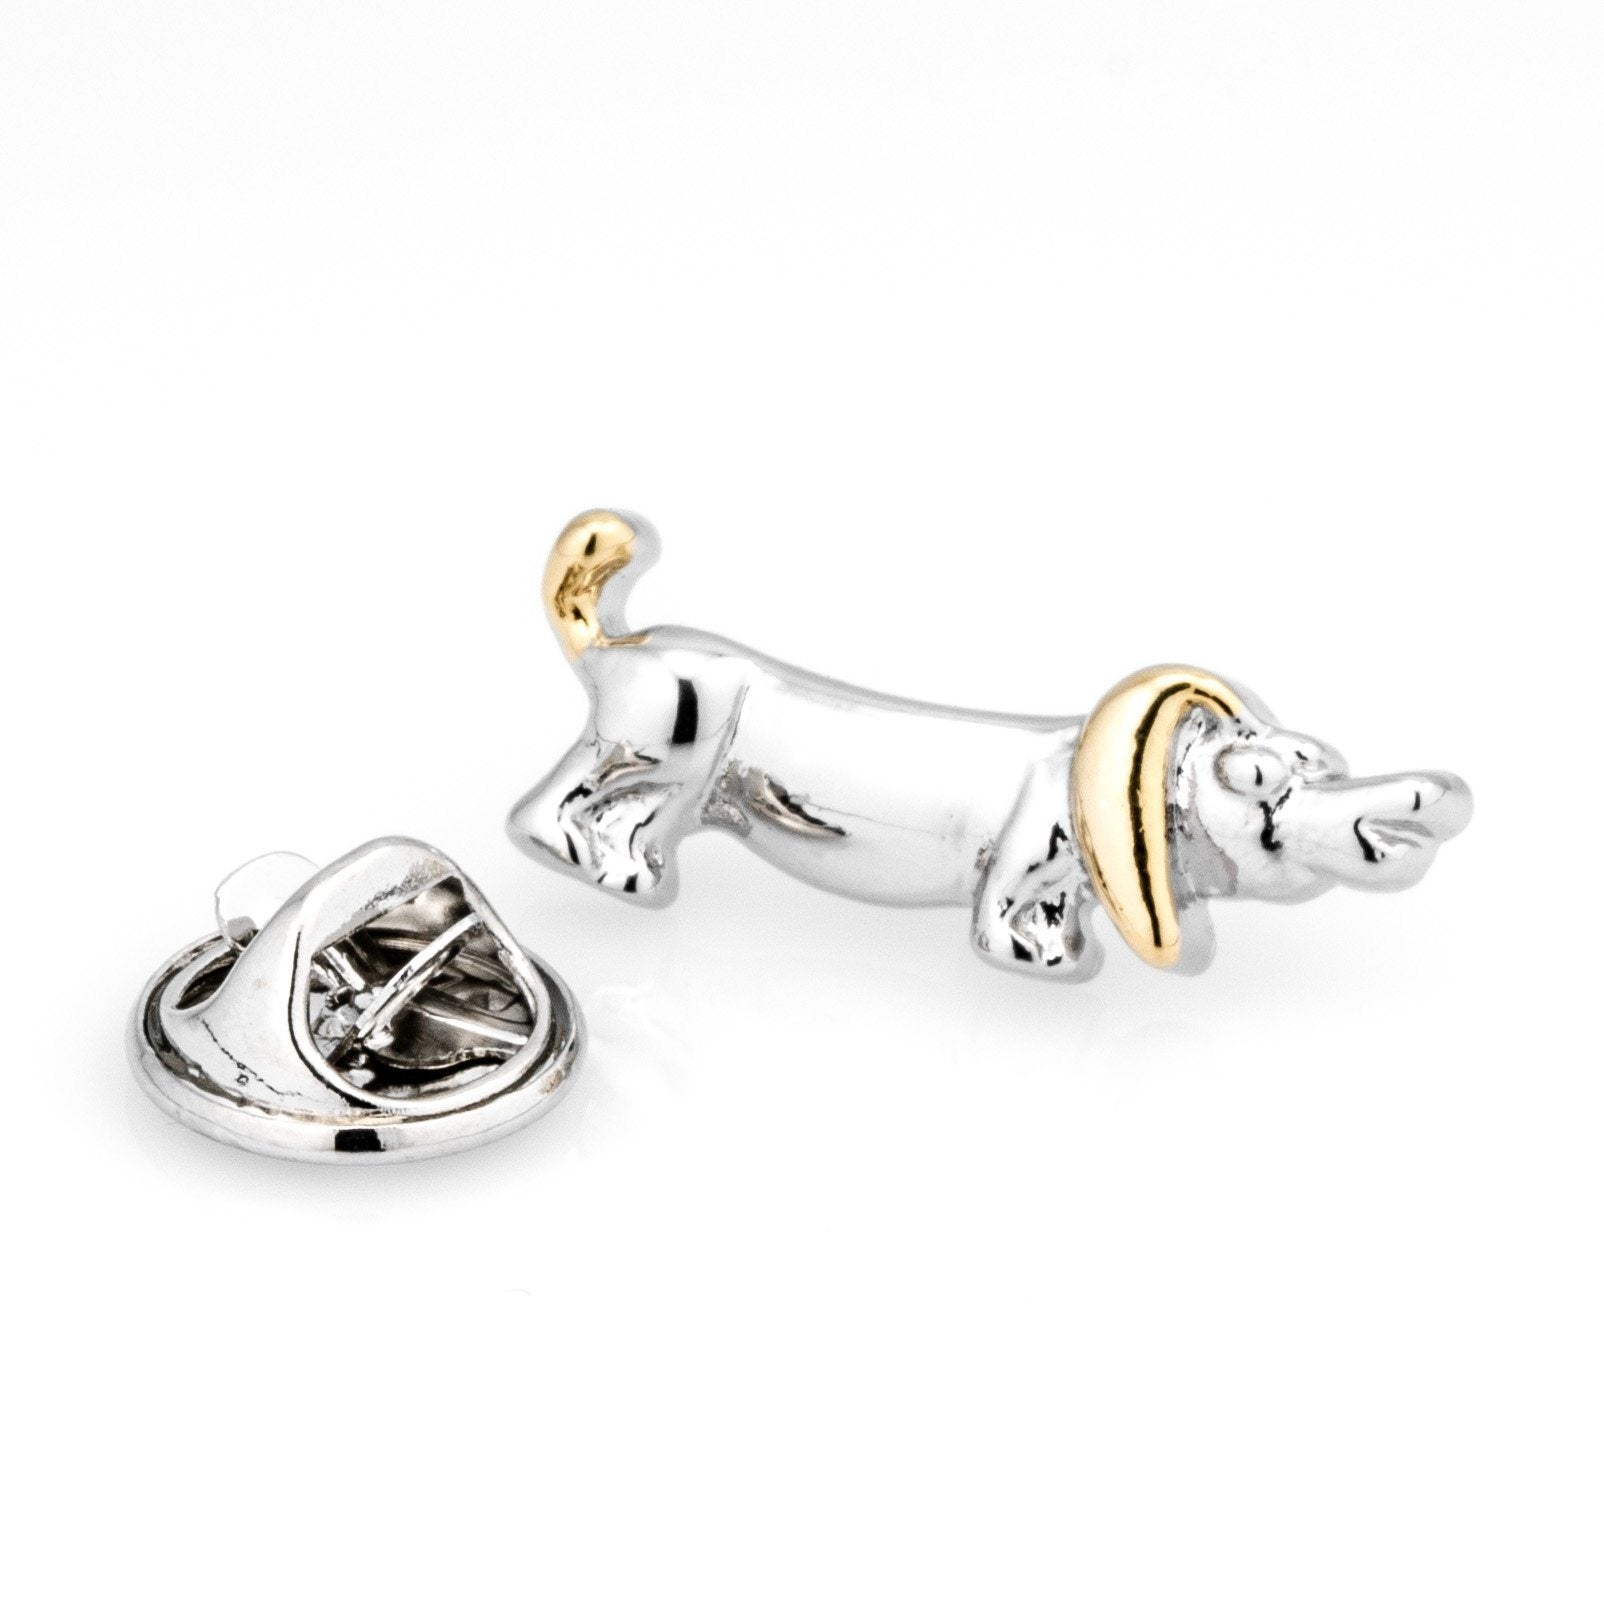 Sausage Dog Lapel Pin in Gold and Silver Lapel Pin Clinks Australia Default